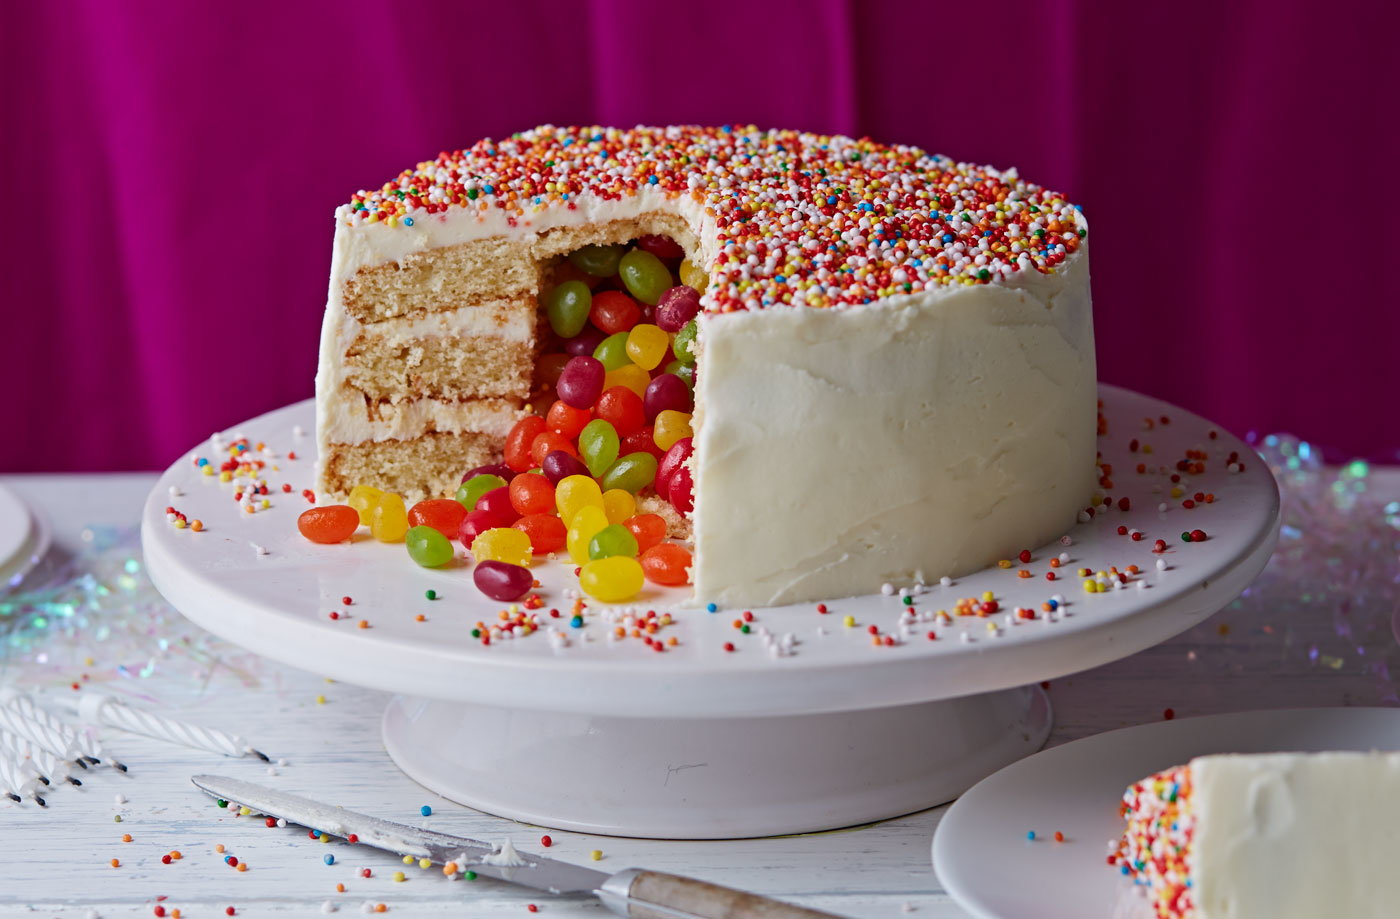 Surprise Pinata Cake Cake Ideas Tesco Real Food